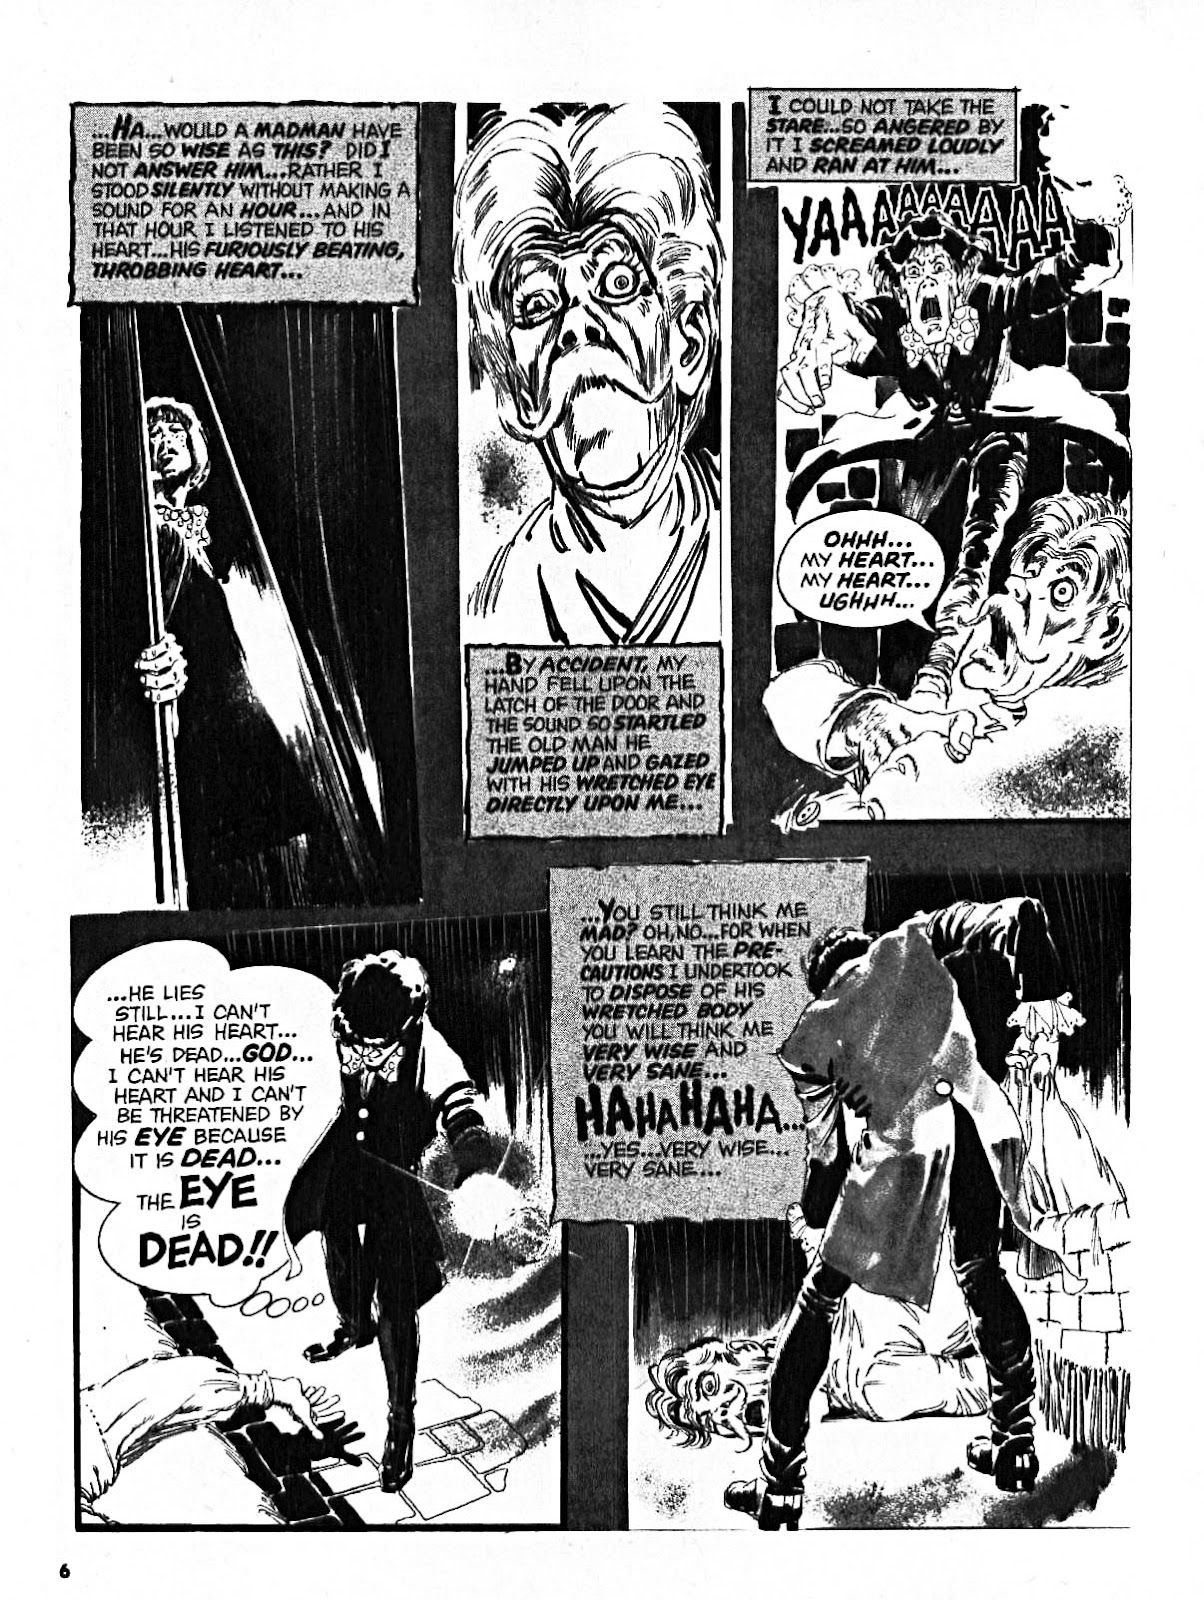 Scream (1973) issue 8 - Page 6